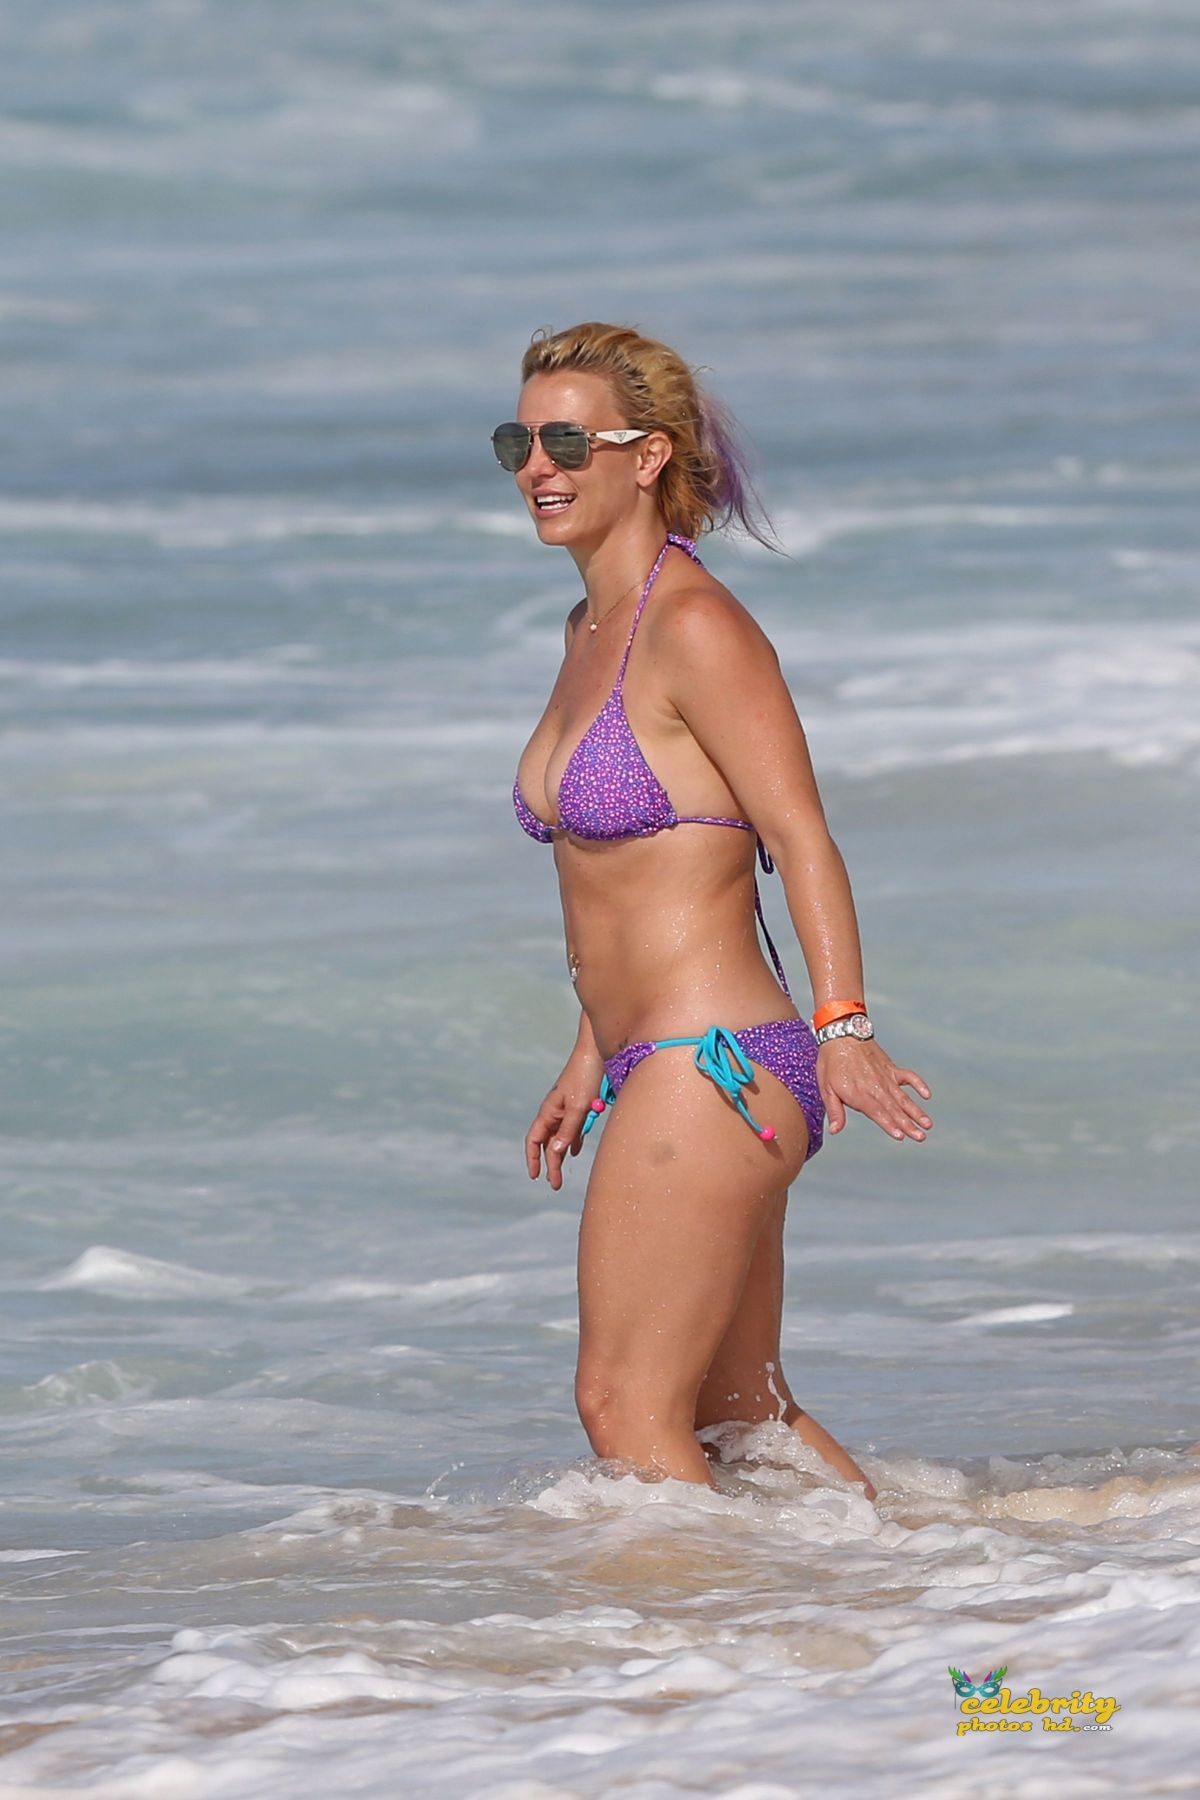 britney-spears-in-bikini-at-a-beach-in-hawaii-07-23-2015_10